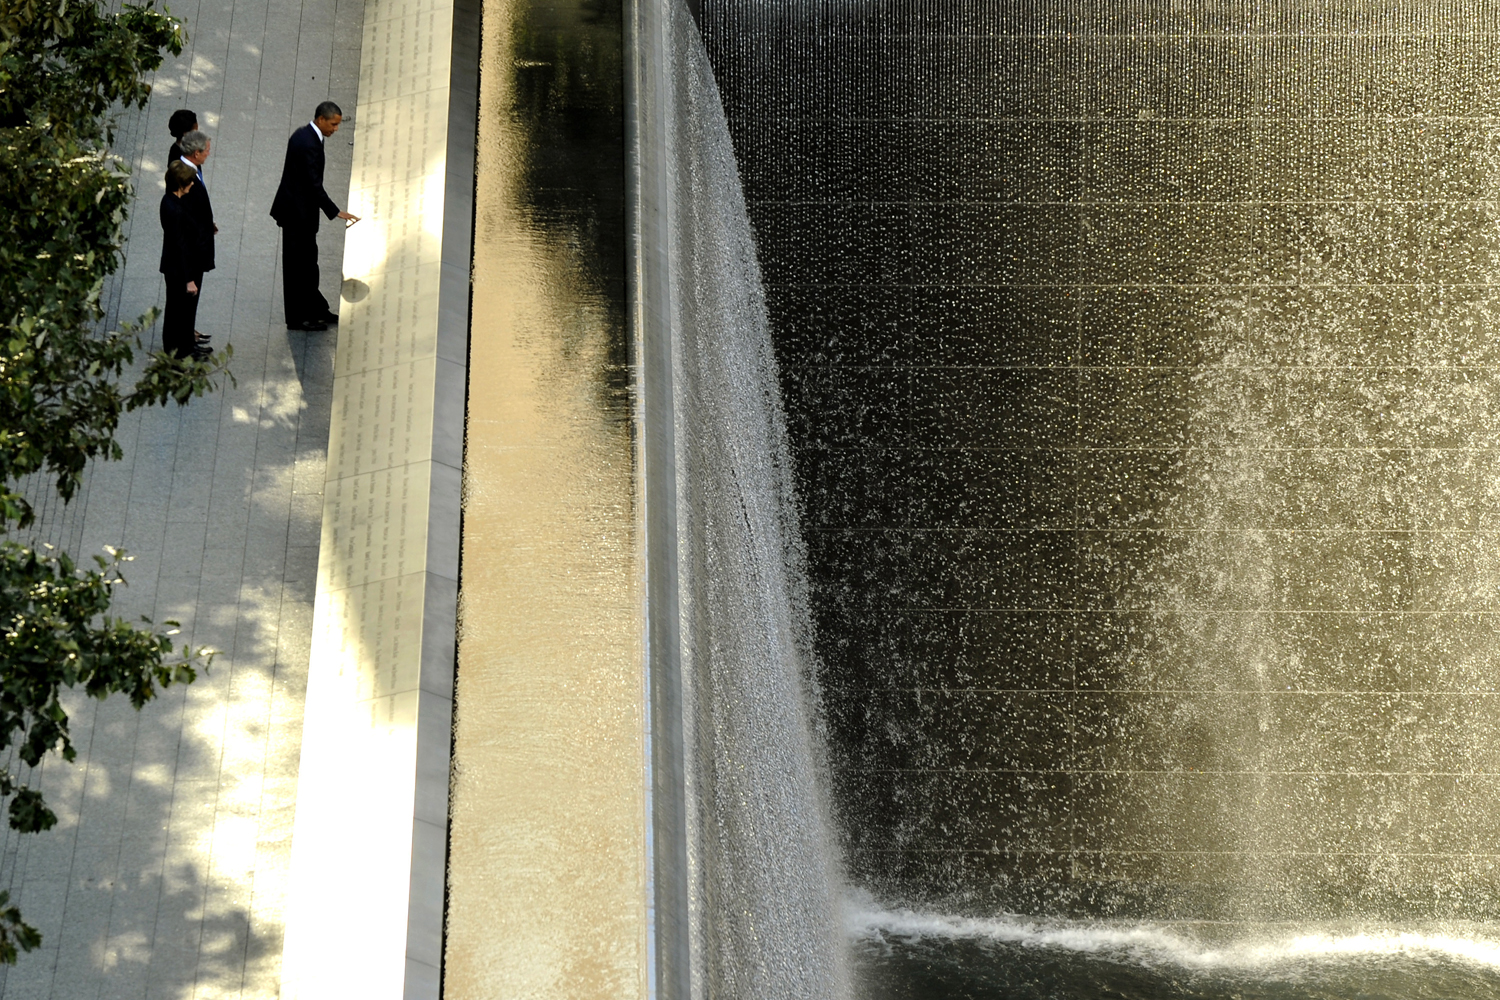 September 11, 2011. President Barack Obama, accompanied by his wife Michelle Obama, former President George Bush and his wife Laura Bush, by the South Reflecting Pool during a visit to the National September 11 Memorial in New York on the 10th anniversary of the terrorist attacks.